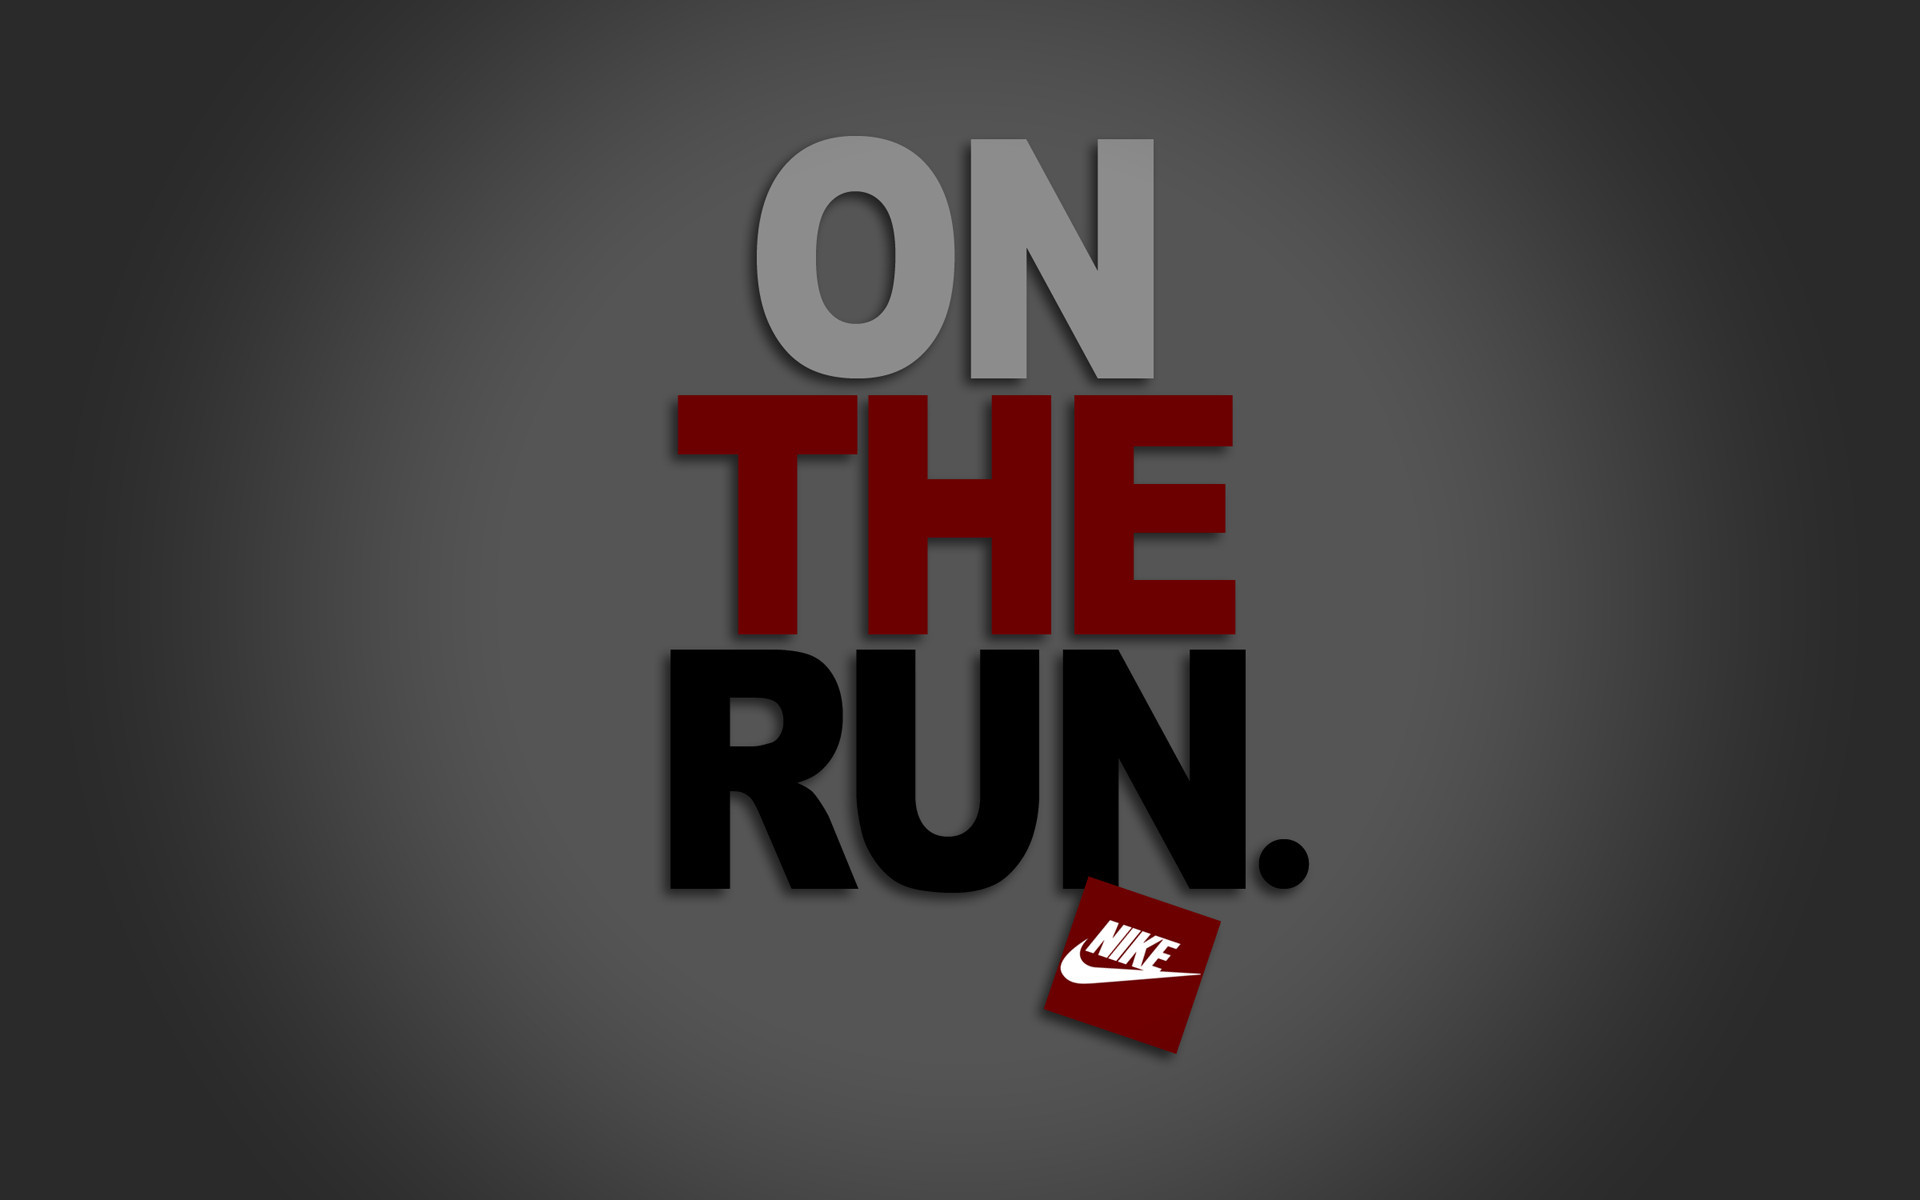 Nike Gallery 507831123 Wallpaper For Free Cool Hqfx Wallpaper